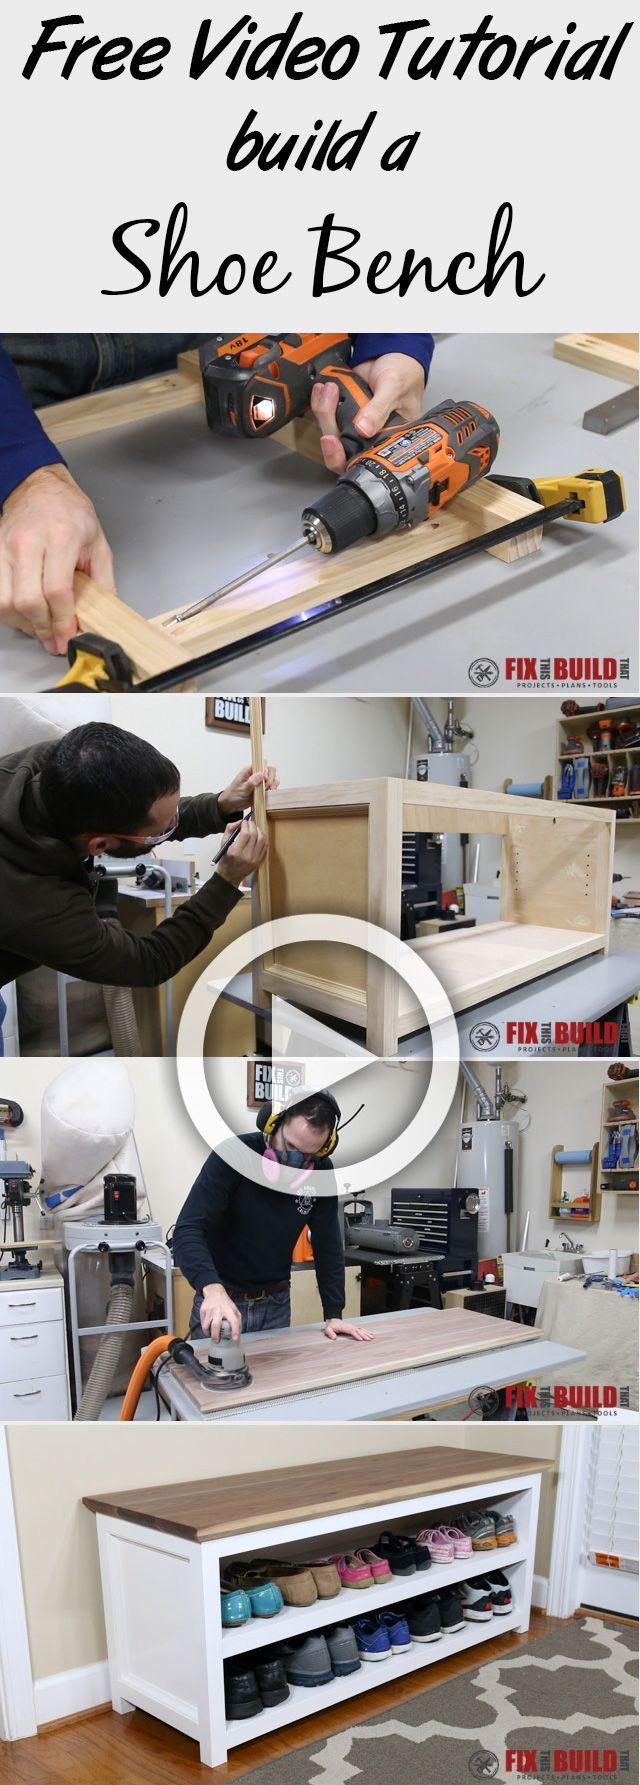 Learn how to build a DIY Shoe Storage Bench with this free video tutorial!